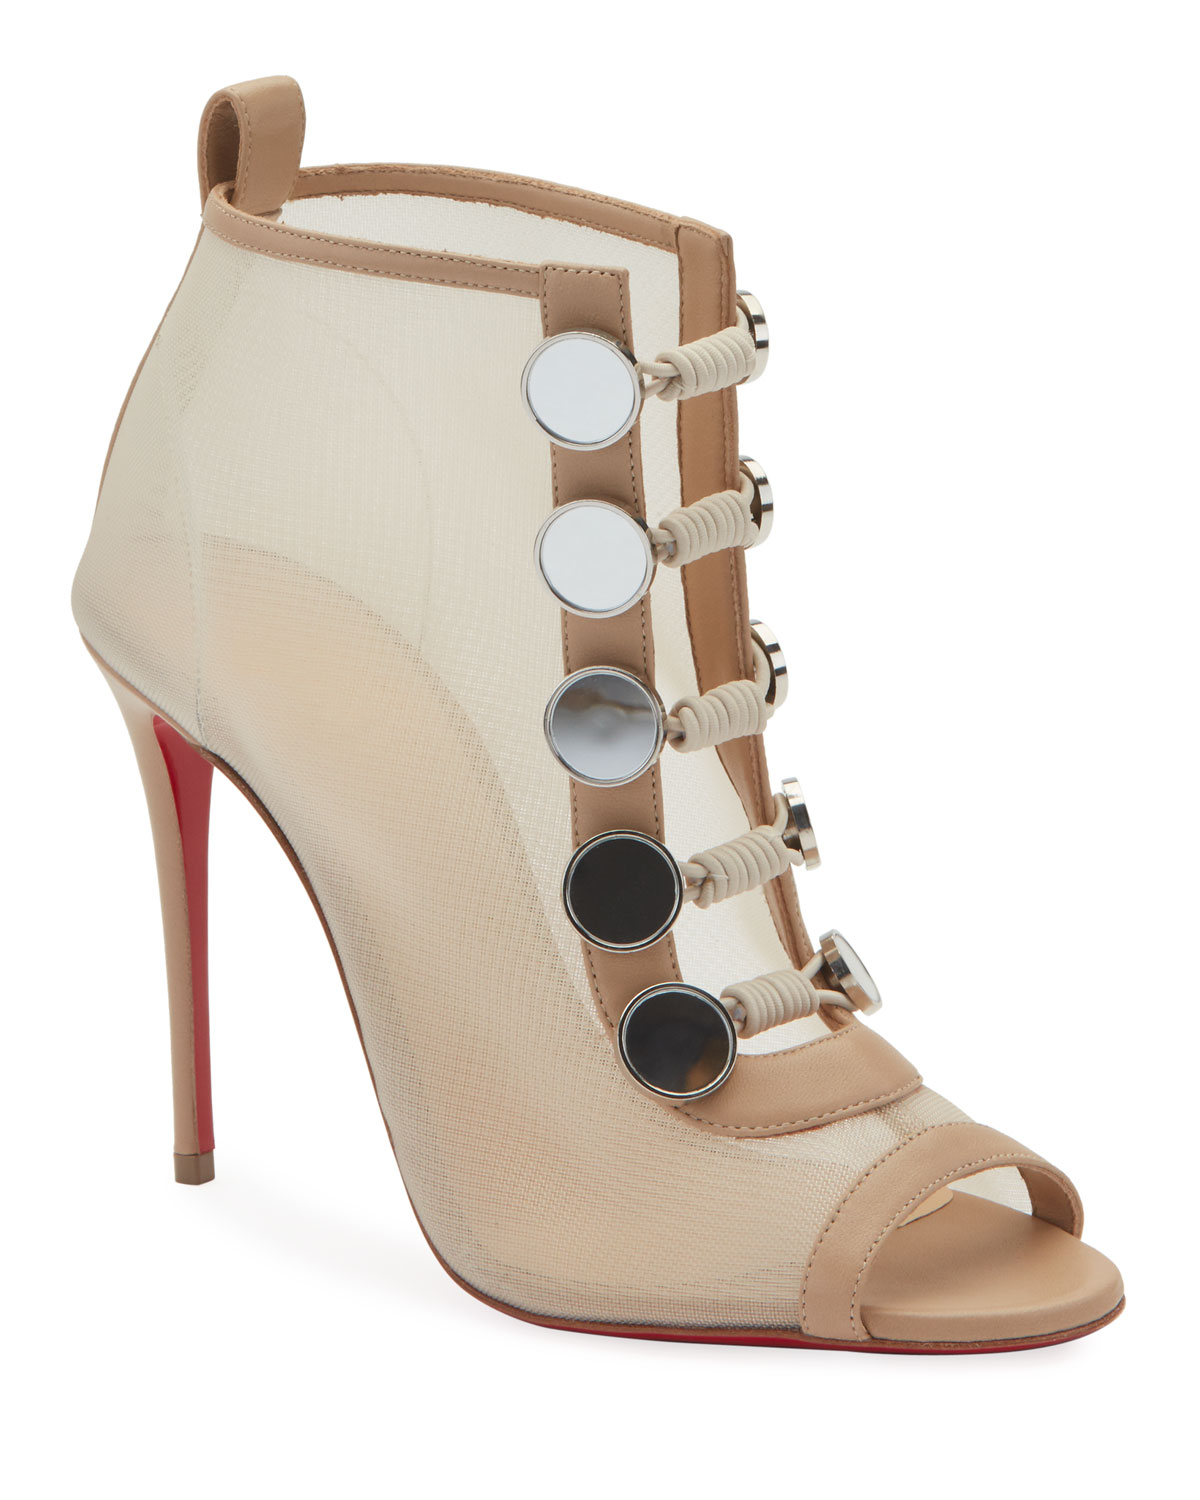 reputable site c0158 0023a Marikat Open-Toe Toggle Red Sole Booties